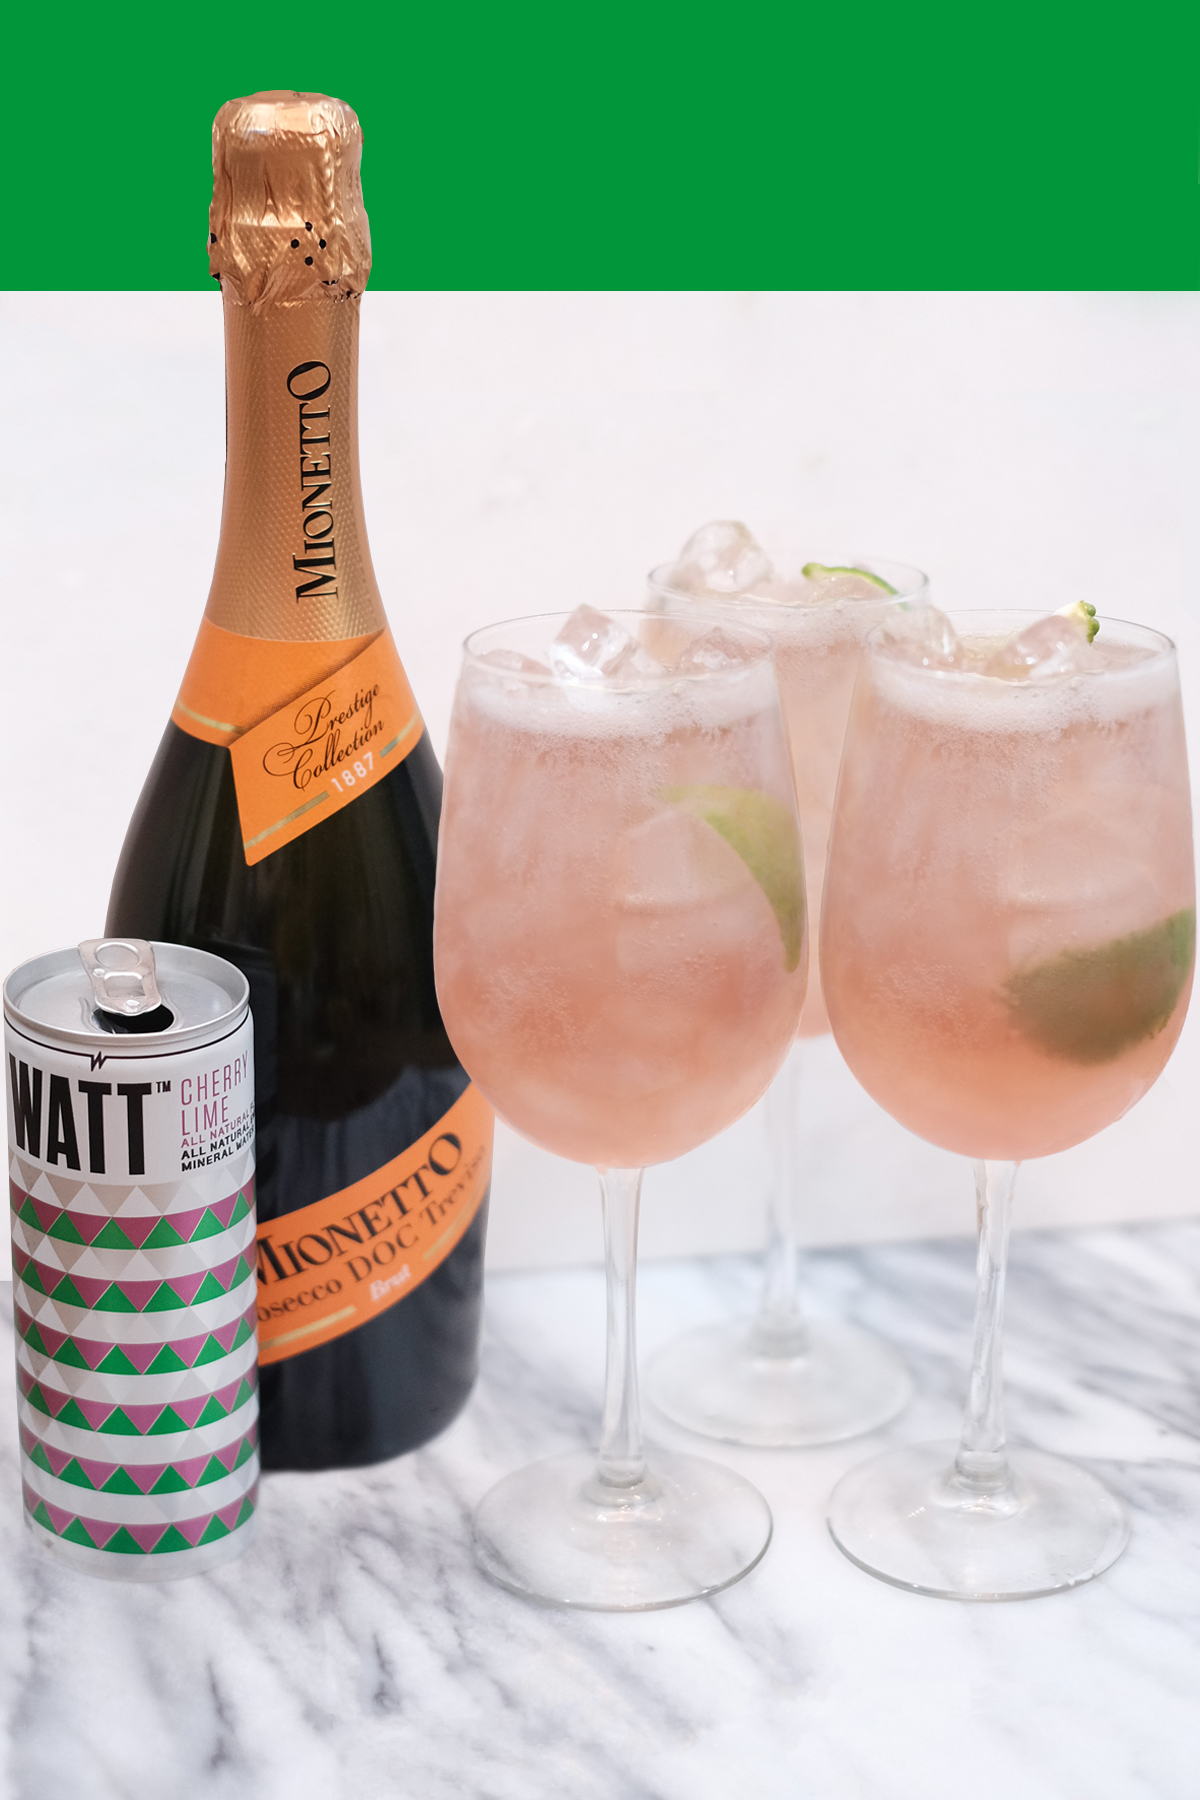 WATT NATURAL SPRITZER - INGREDIENTS3oz WATT Cherry Lime 2oz Prosecco or White WineGLASSChampagne or Wine Glass HOW TO MAKE THE WATT NATURAL SPRITZERMix your Prosecco or White Wine with WATT Cherry Lime and voilá, magic.